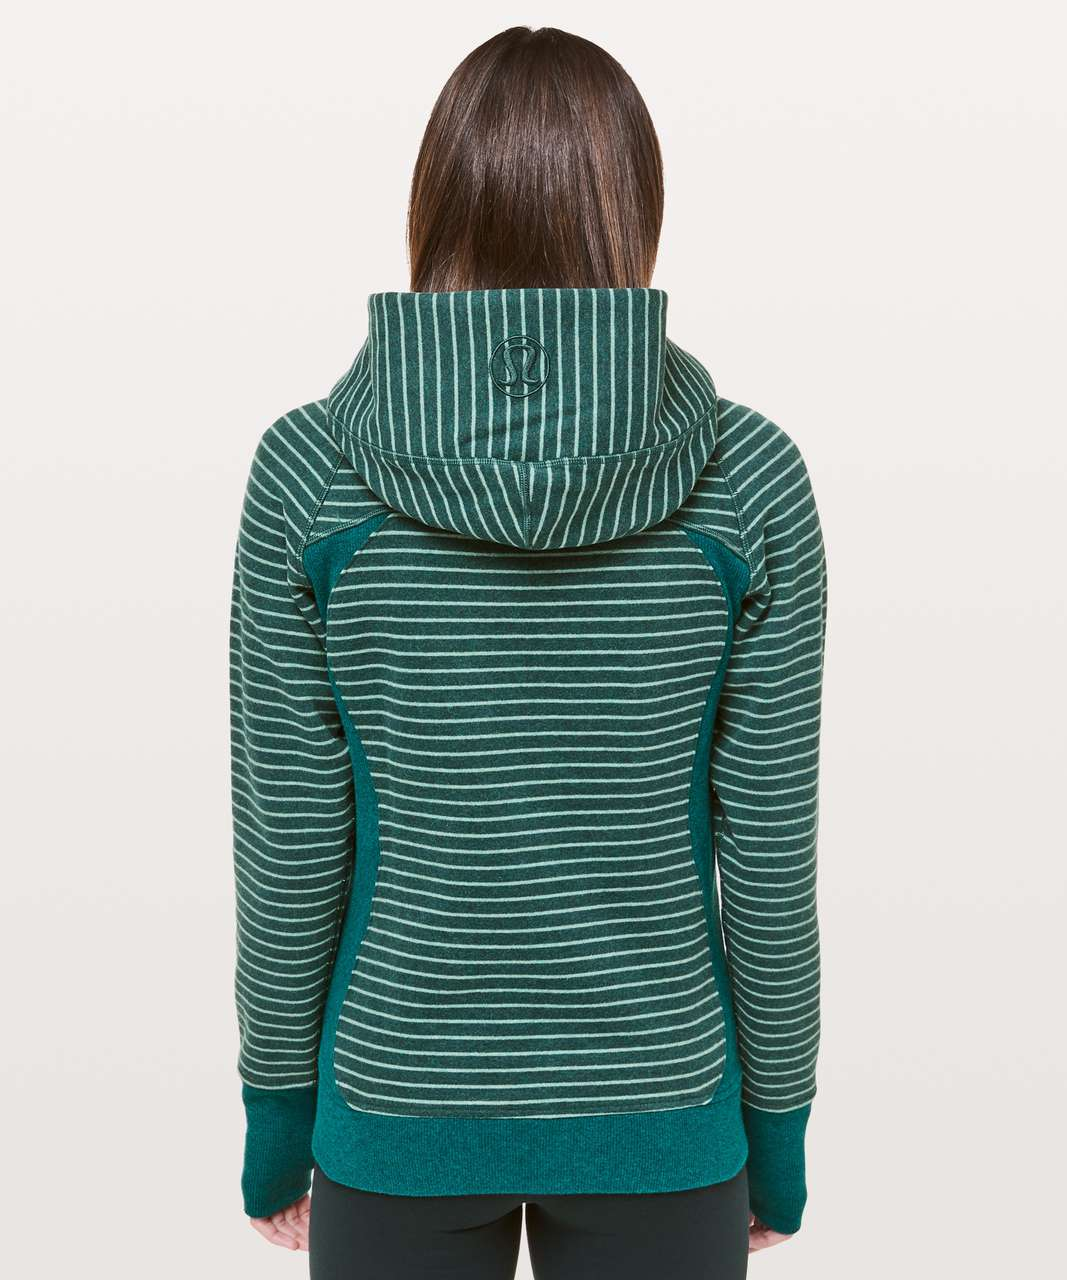 Lululemon Scuba Hoodie *Classic Cotton Fleece - Parallel Stripe Heathered Emerald Heathered Green Smoke